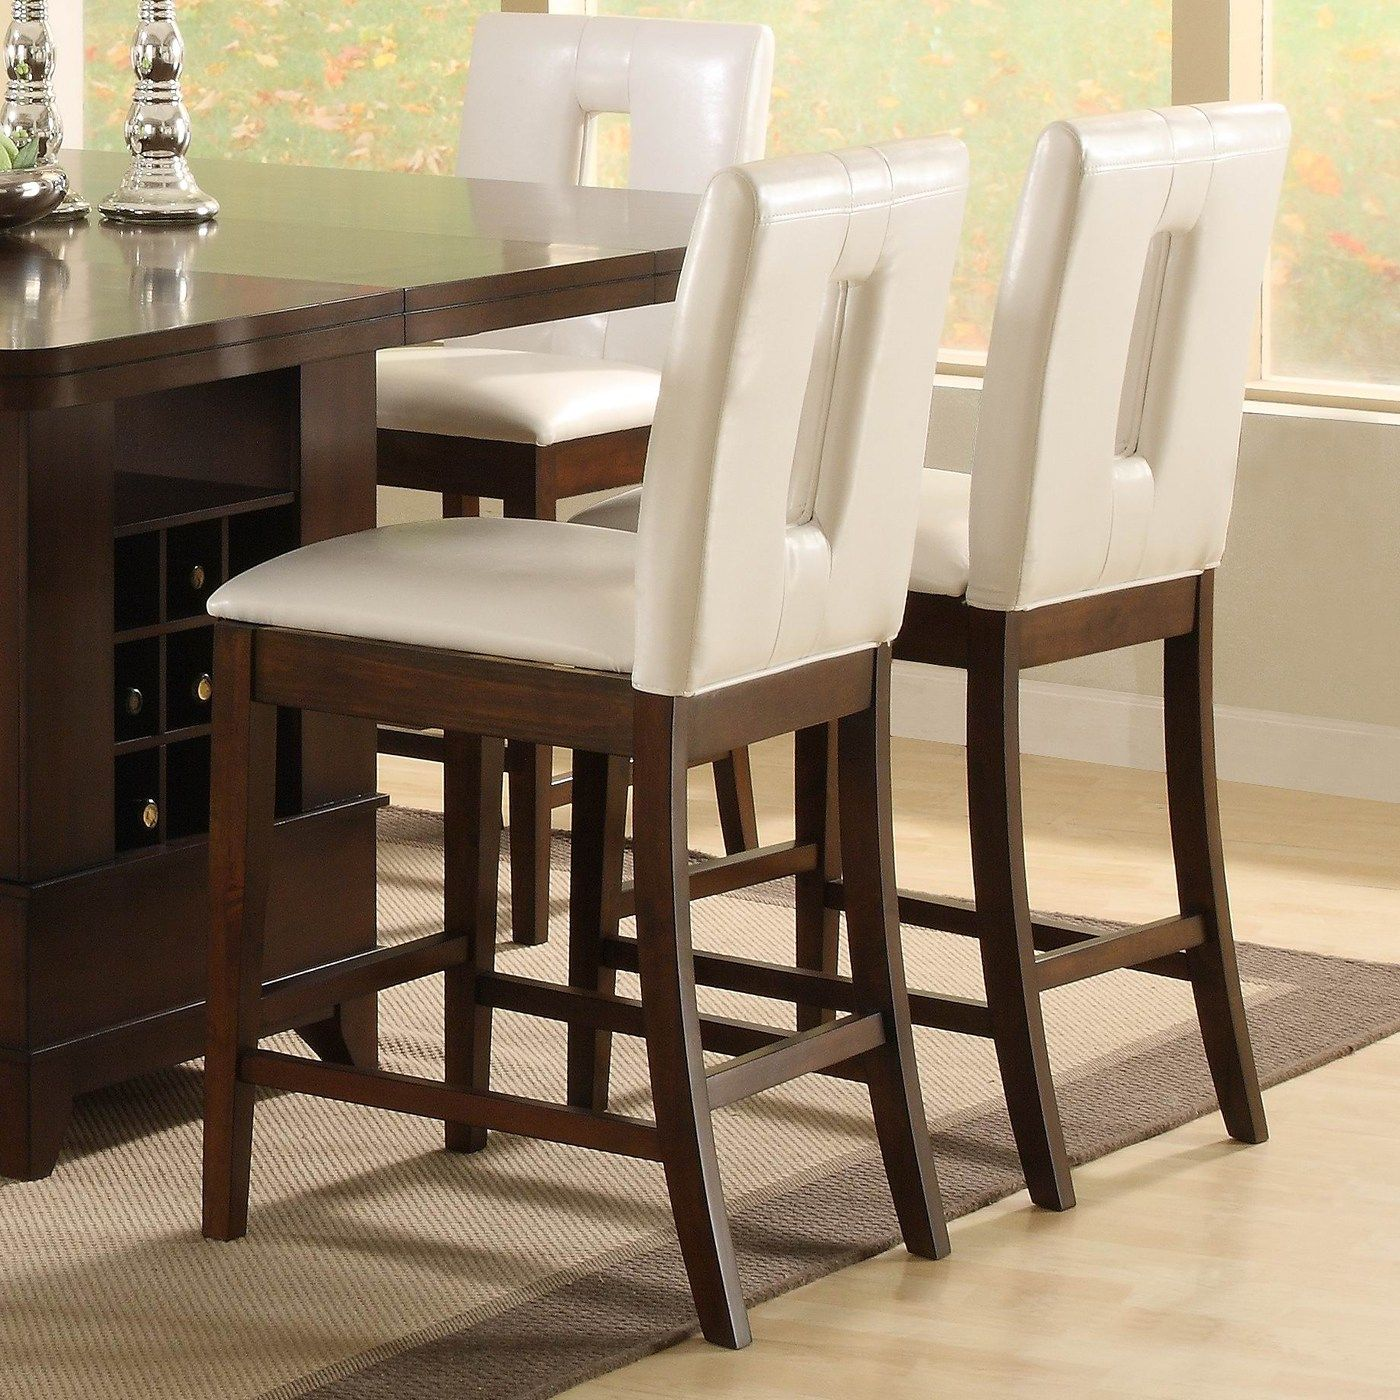 countertop height bar stools. Furniture Wonderful Counter Height Swivel Bar Stools For Home In Kitchen How Countertop O